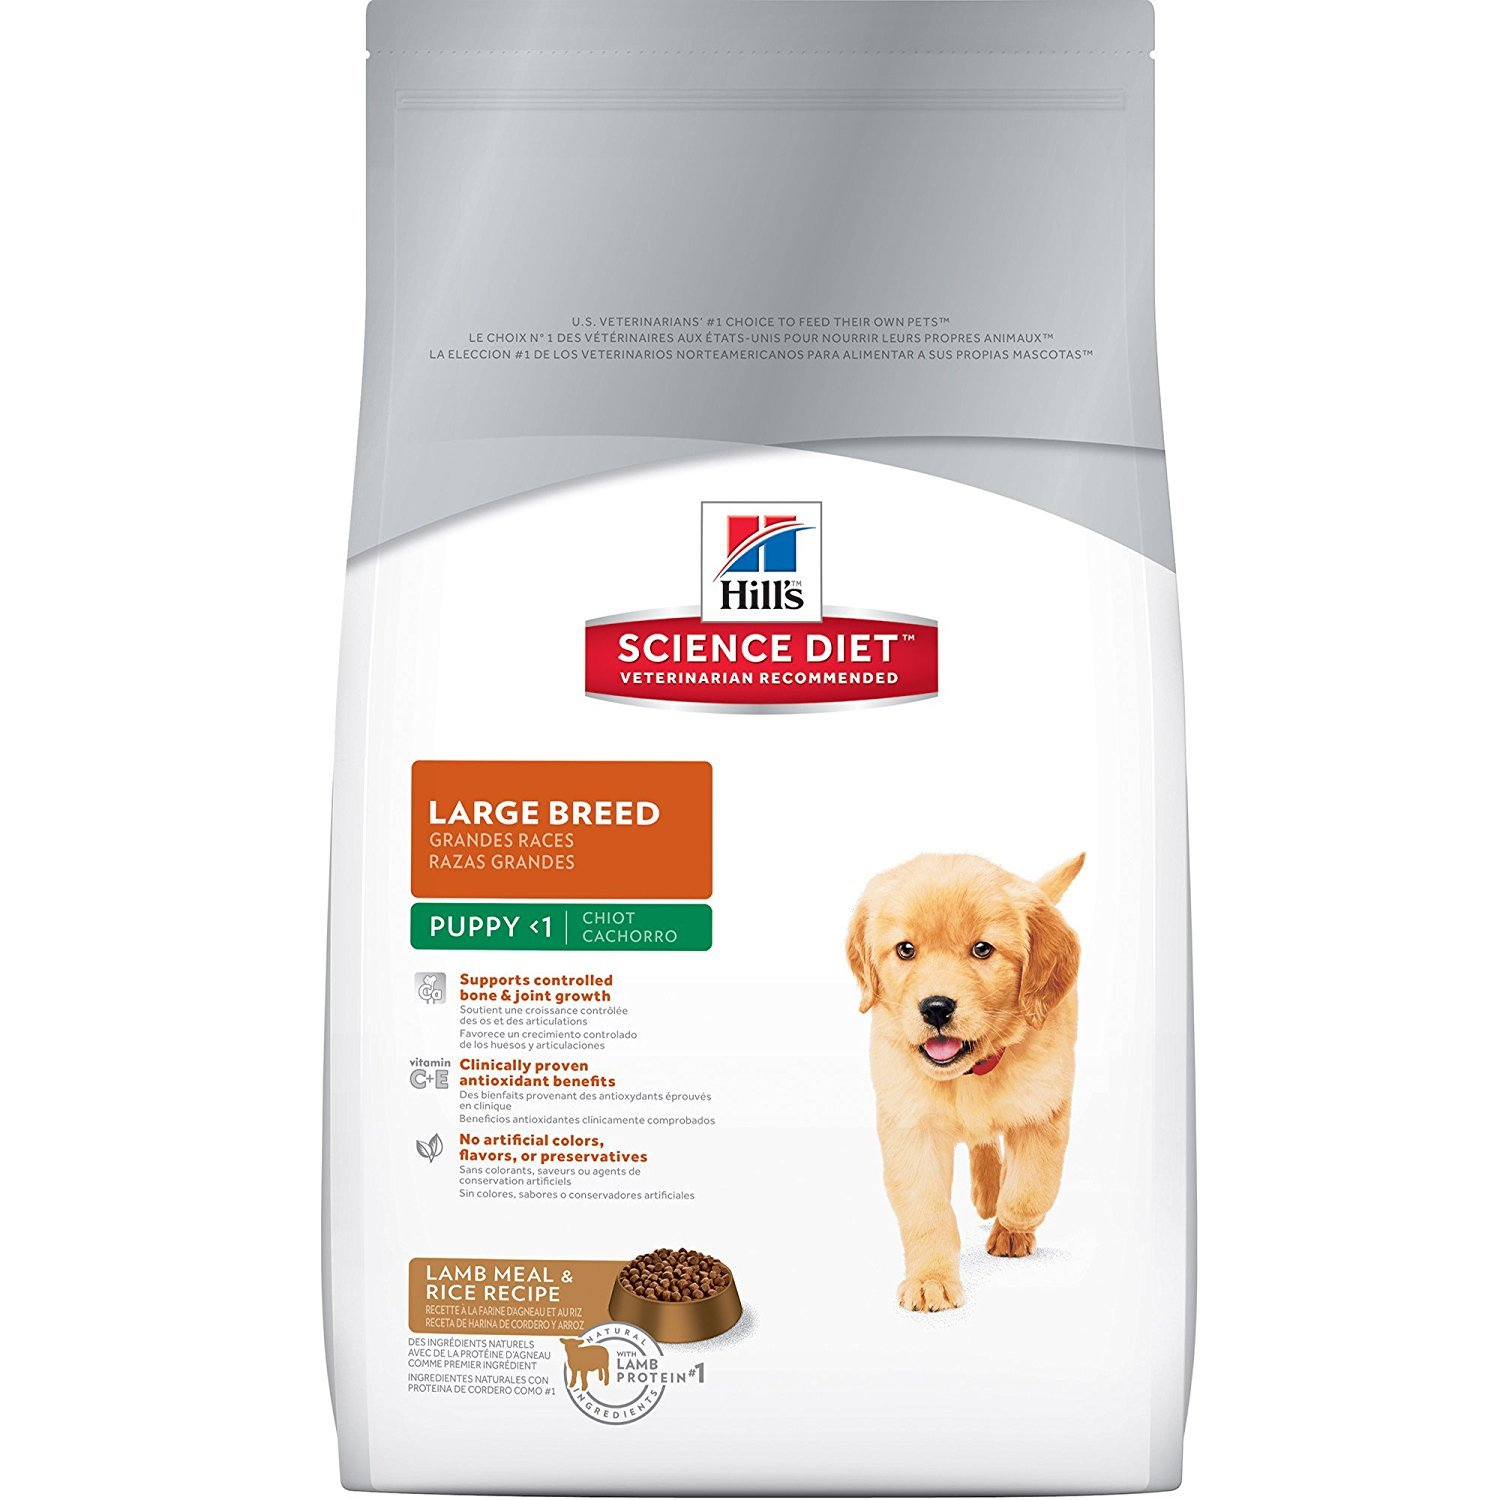 Hill's Science Diet Canine Adult Lamb Meal and Rice Recipe Large Breed Dry Food 15kg/33-Pound Bag Hill's Pet Nutrition Inc 2038